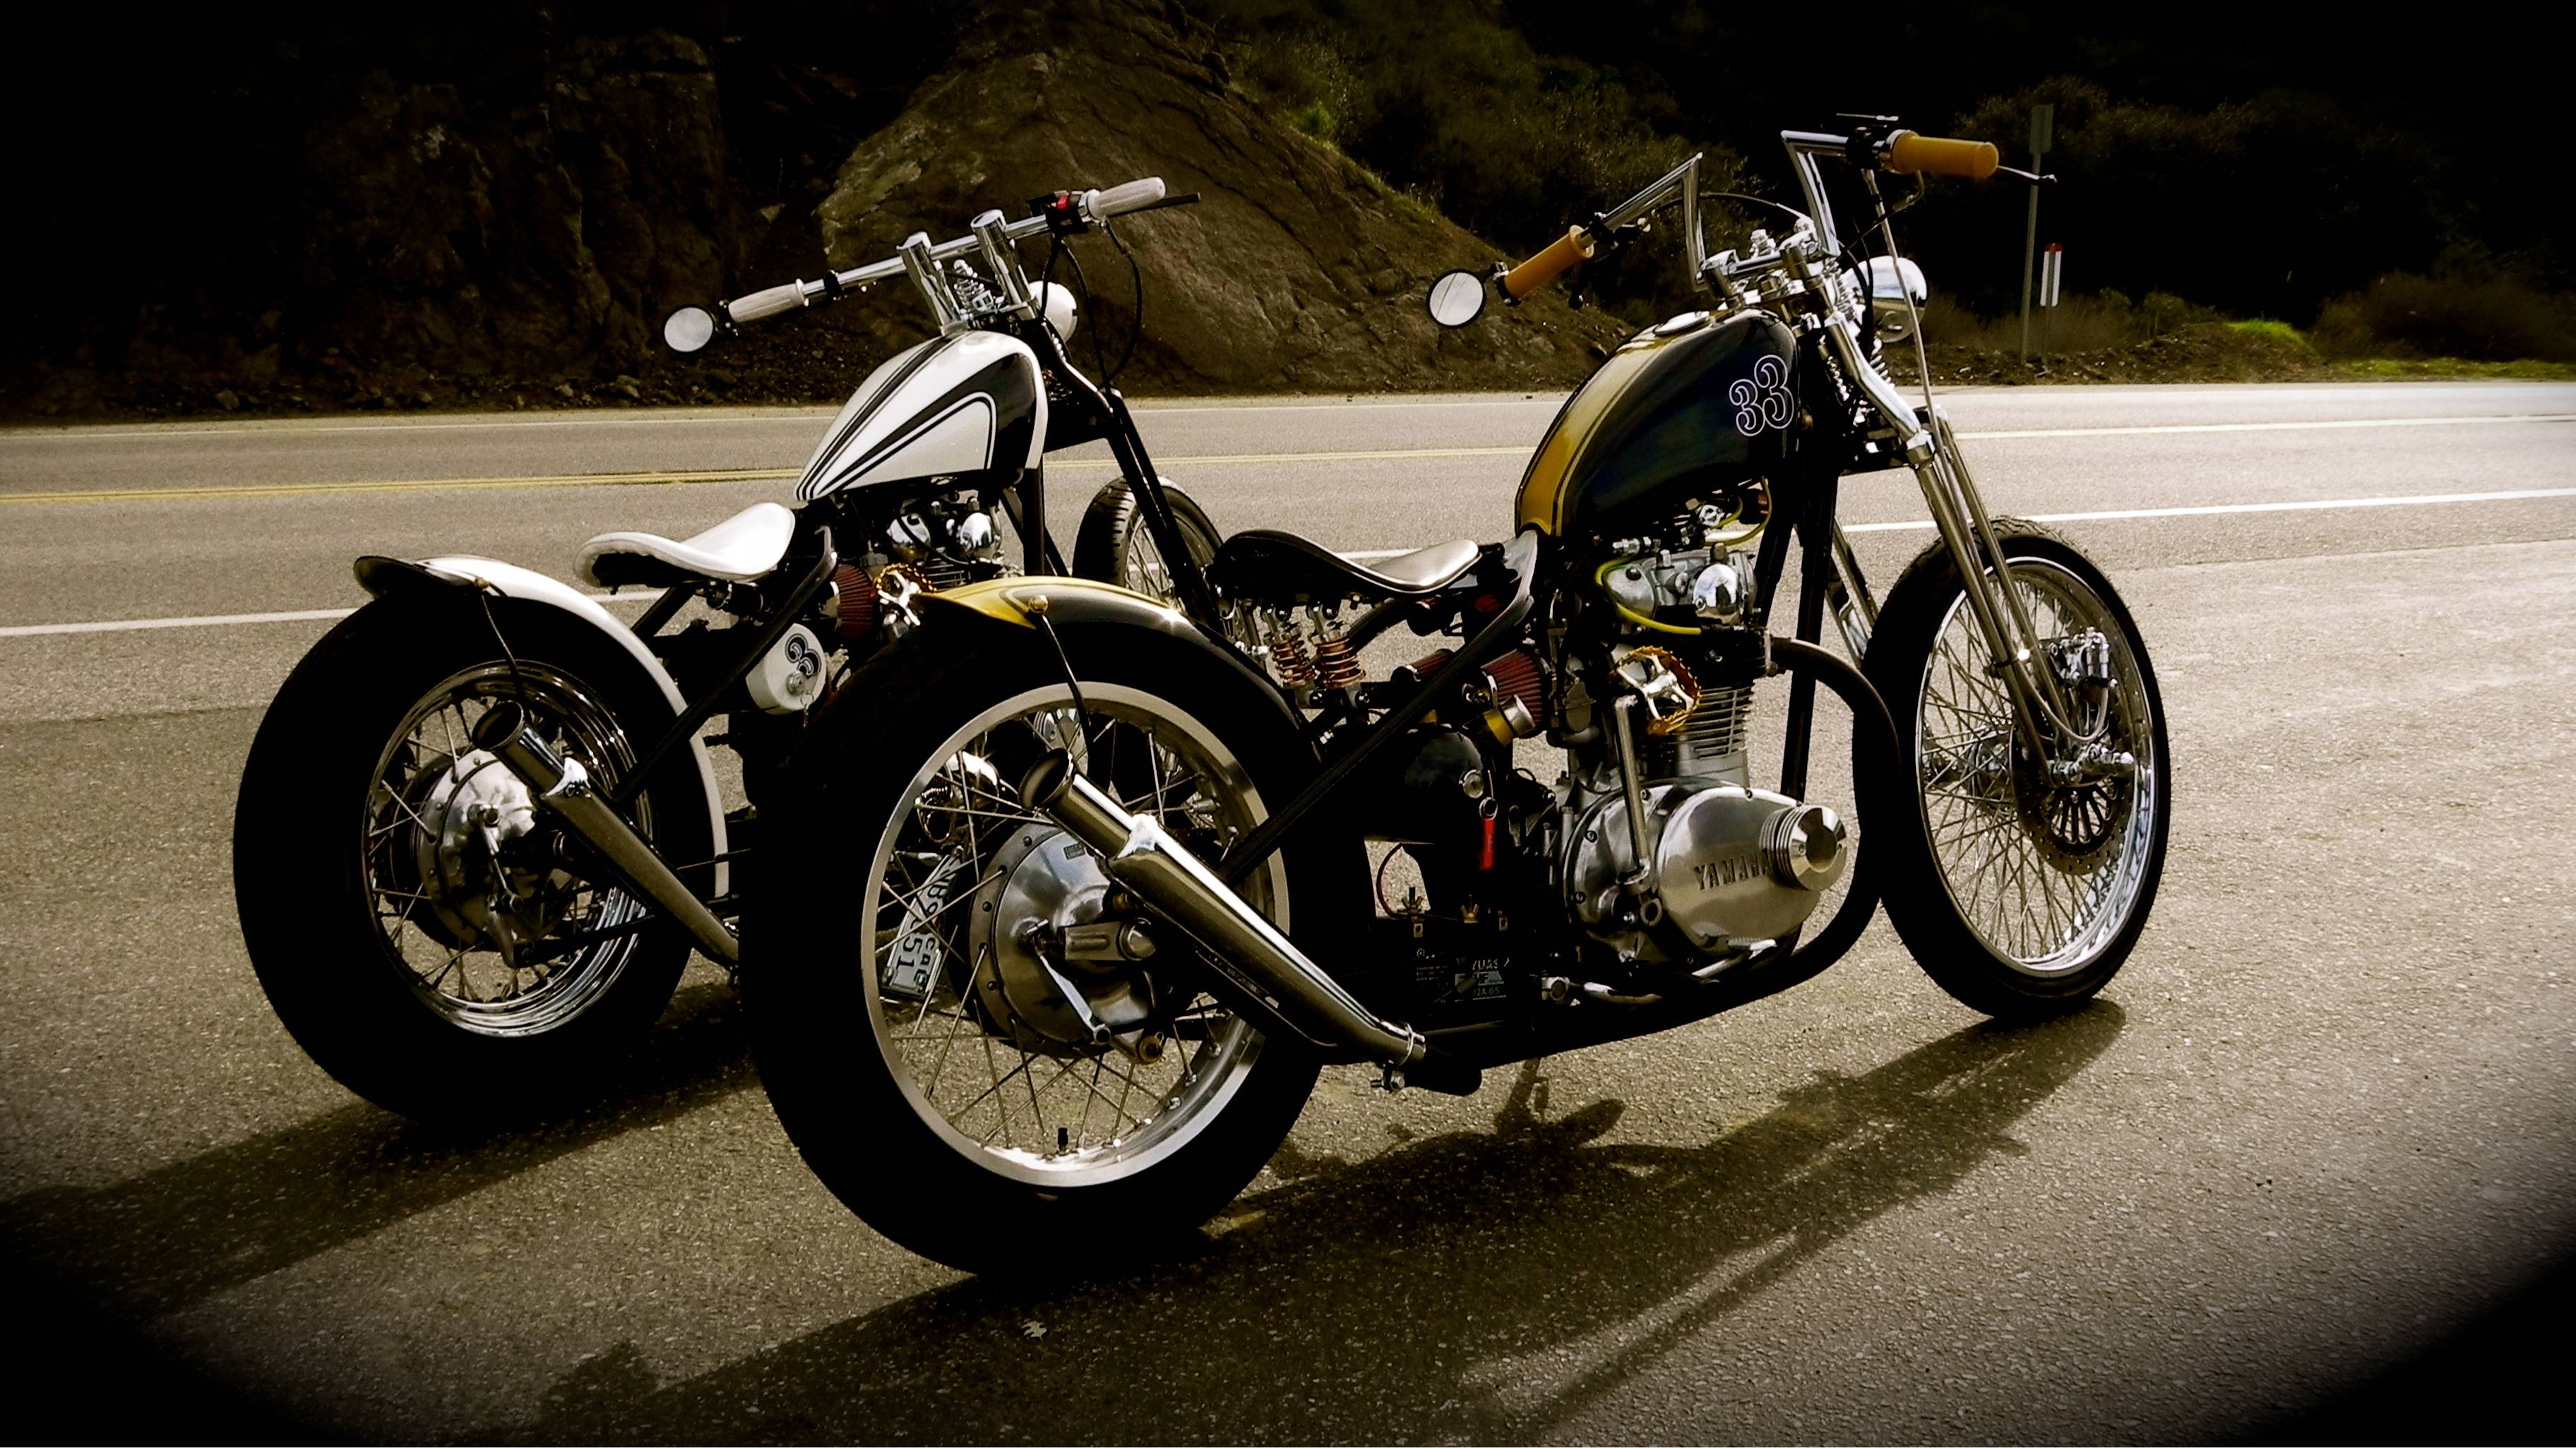 motorcycles photo wallpapers - photo #22